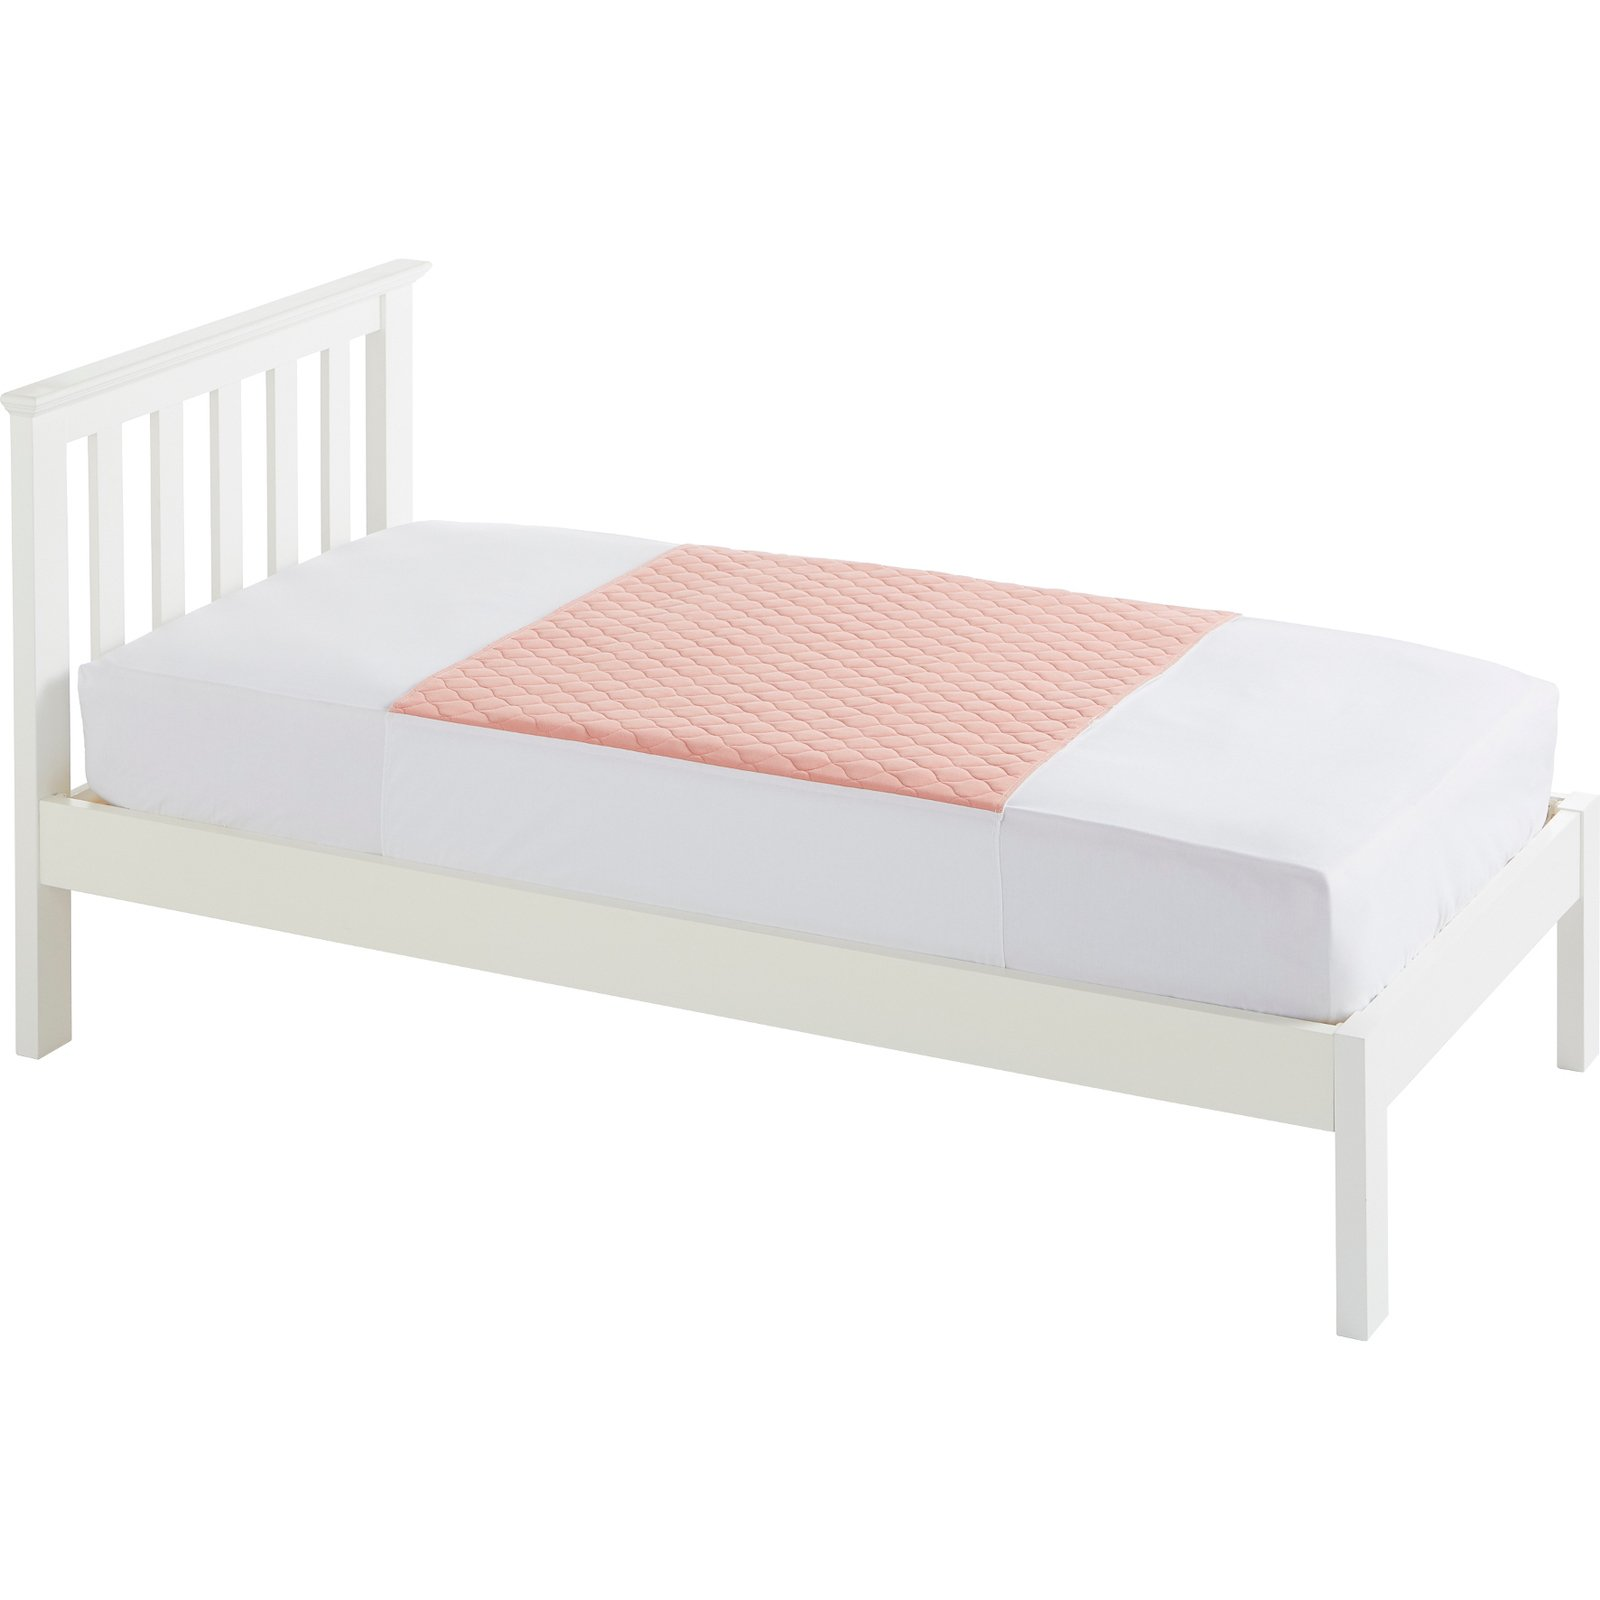 Single Bed 91x91cm Pink